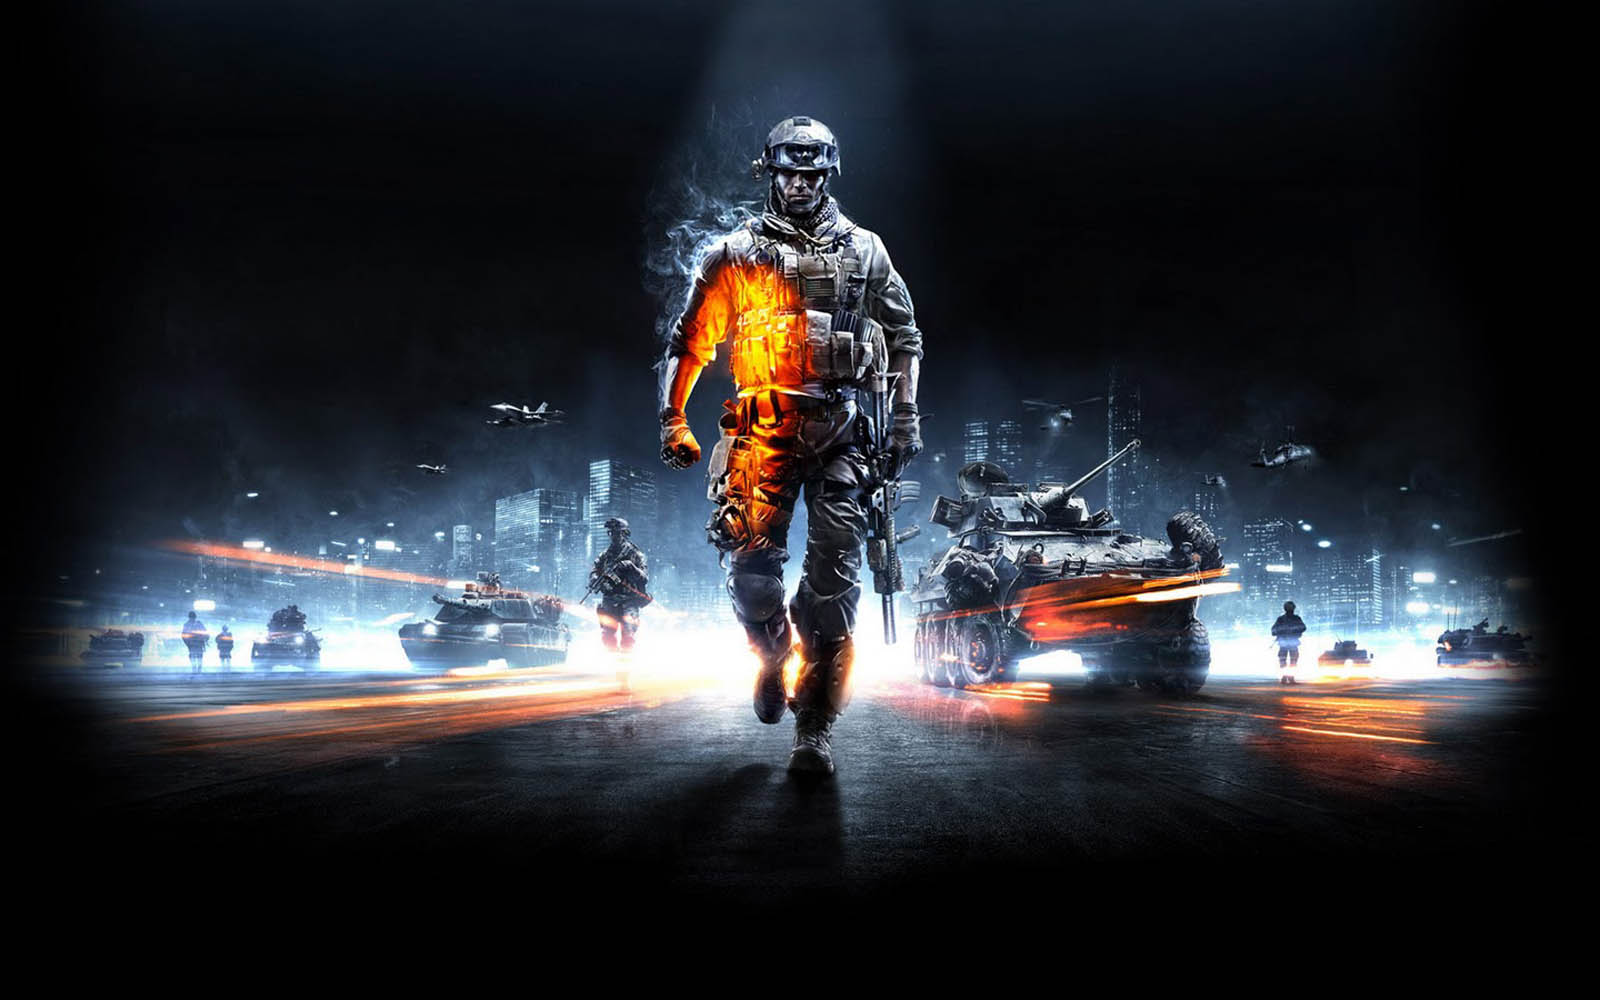 Wallpapers battlefield 3 game desktop wallpapers - Battlefield screensaver ...